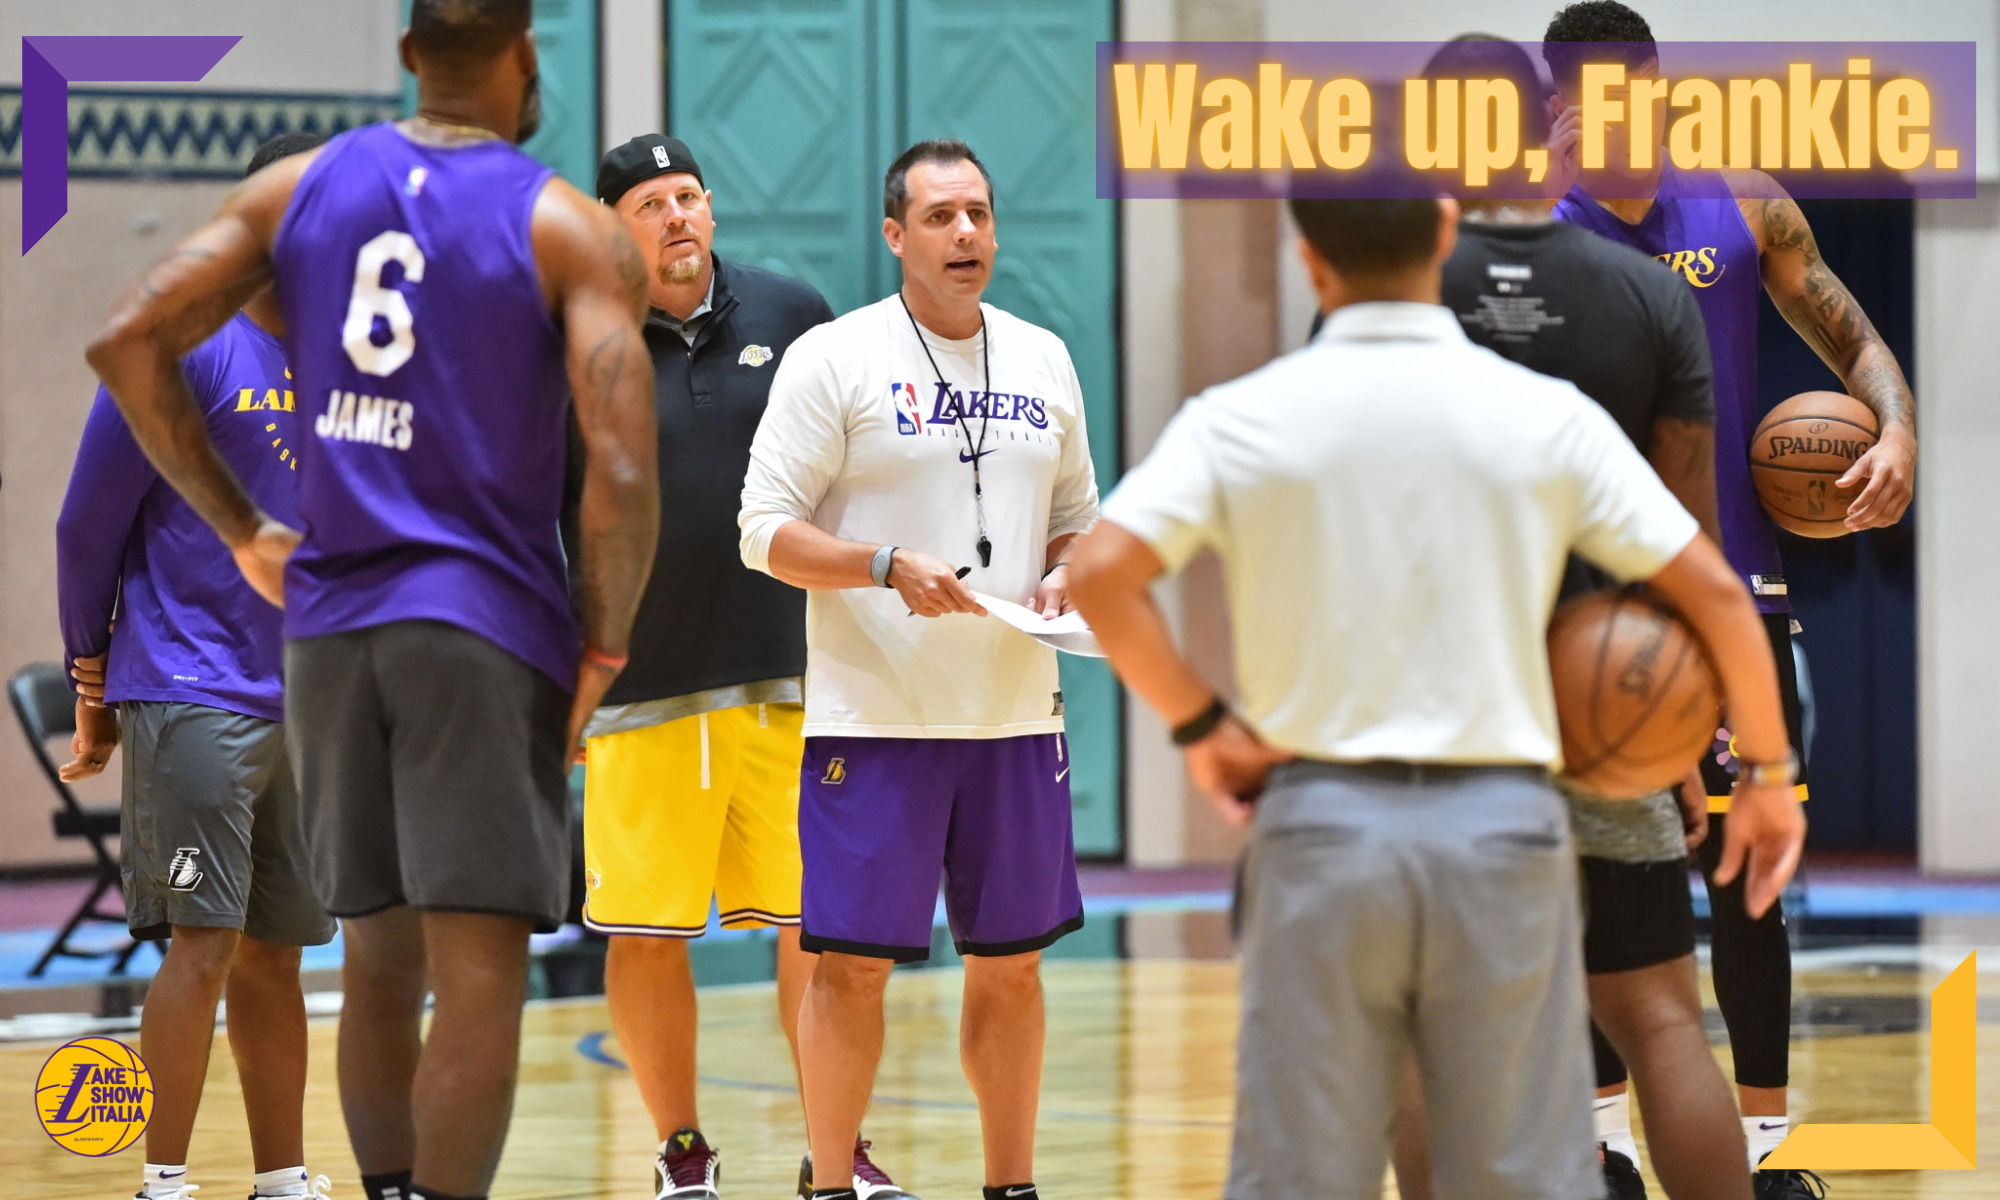 Frank Vogel of the Los Angeles Lakers coaches during practice as part of the NBA Restart 2020 on July 28, 2020 in Orlando, Florida. NOTE TO USER: User expressly acknowledges and agrees that, by downloading and/or using this photograph, user is consenting to the terms and conditions of the Getty Images License Agreement. Mandatory Copyright Notice: Copyright 2020 NBAE